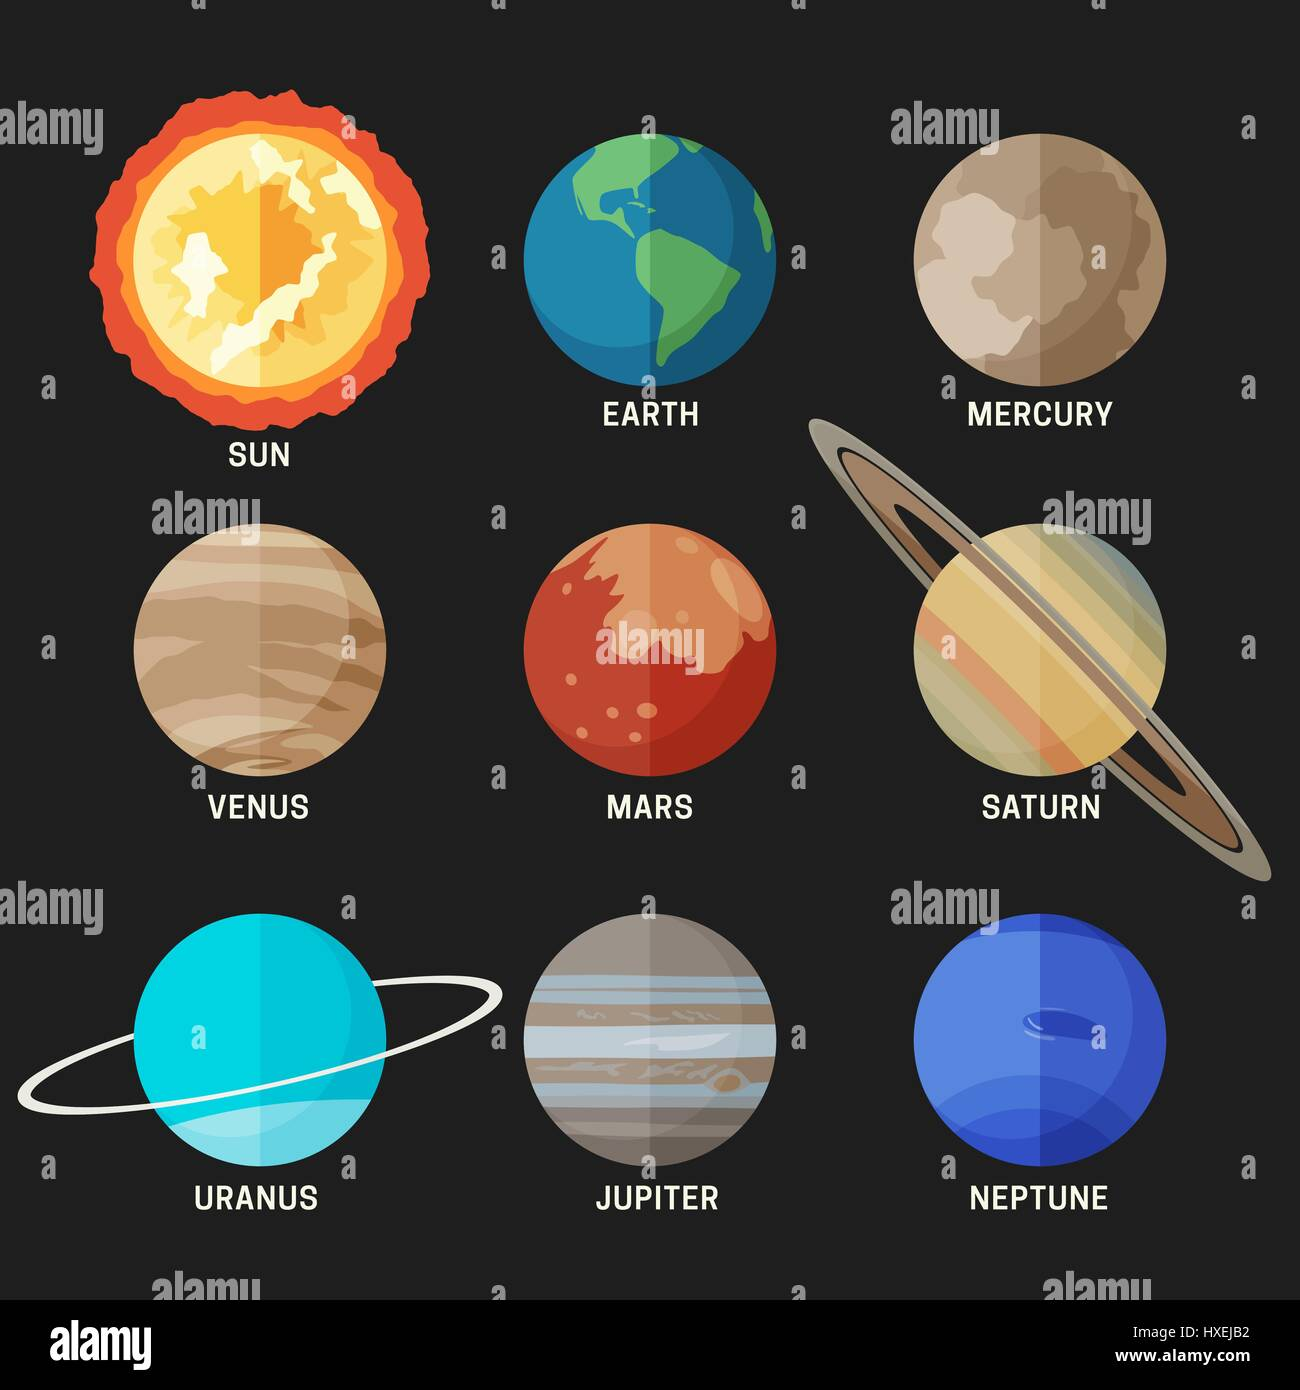 Solar System Stock Vector Images Alamy Diagram In The Space Planets Of